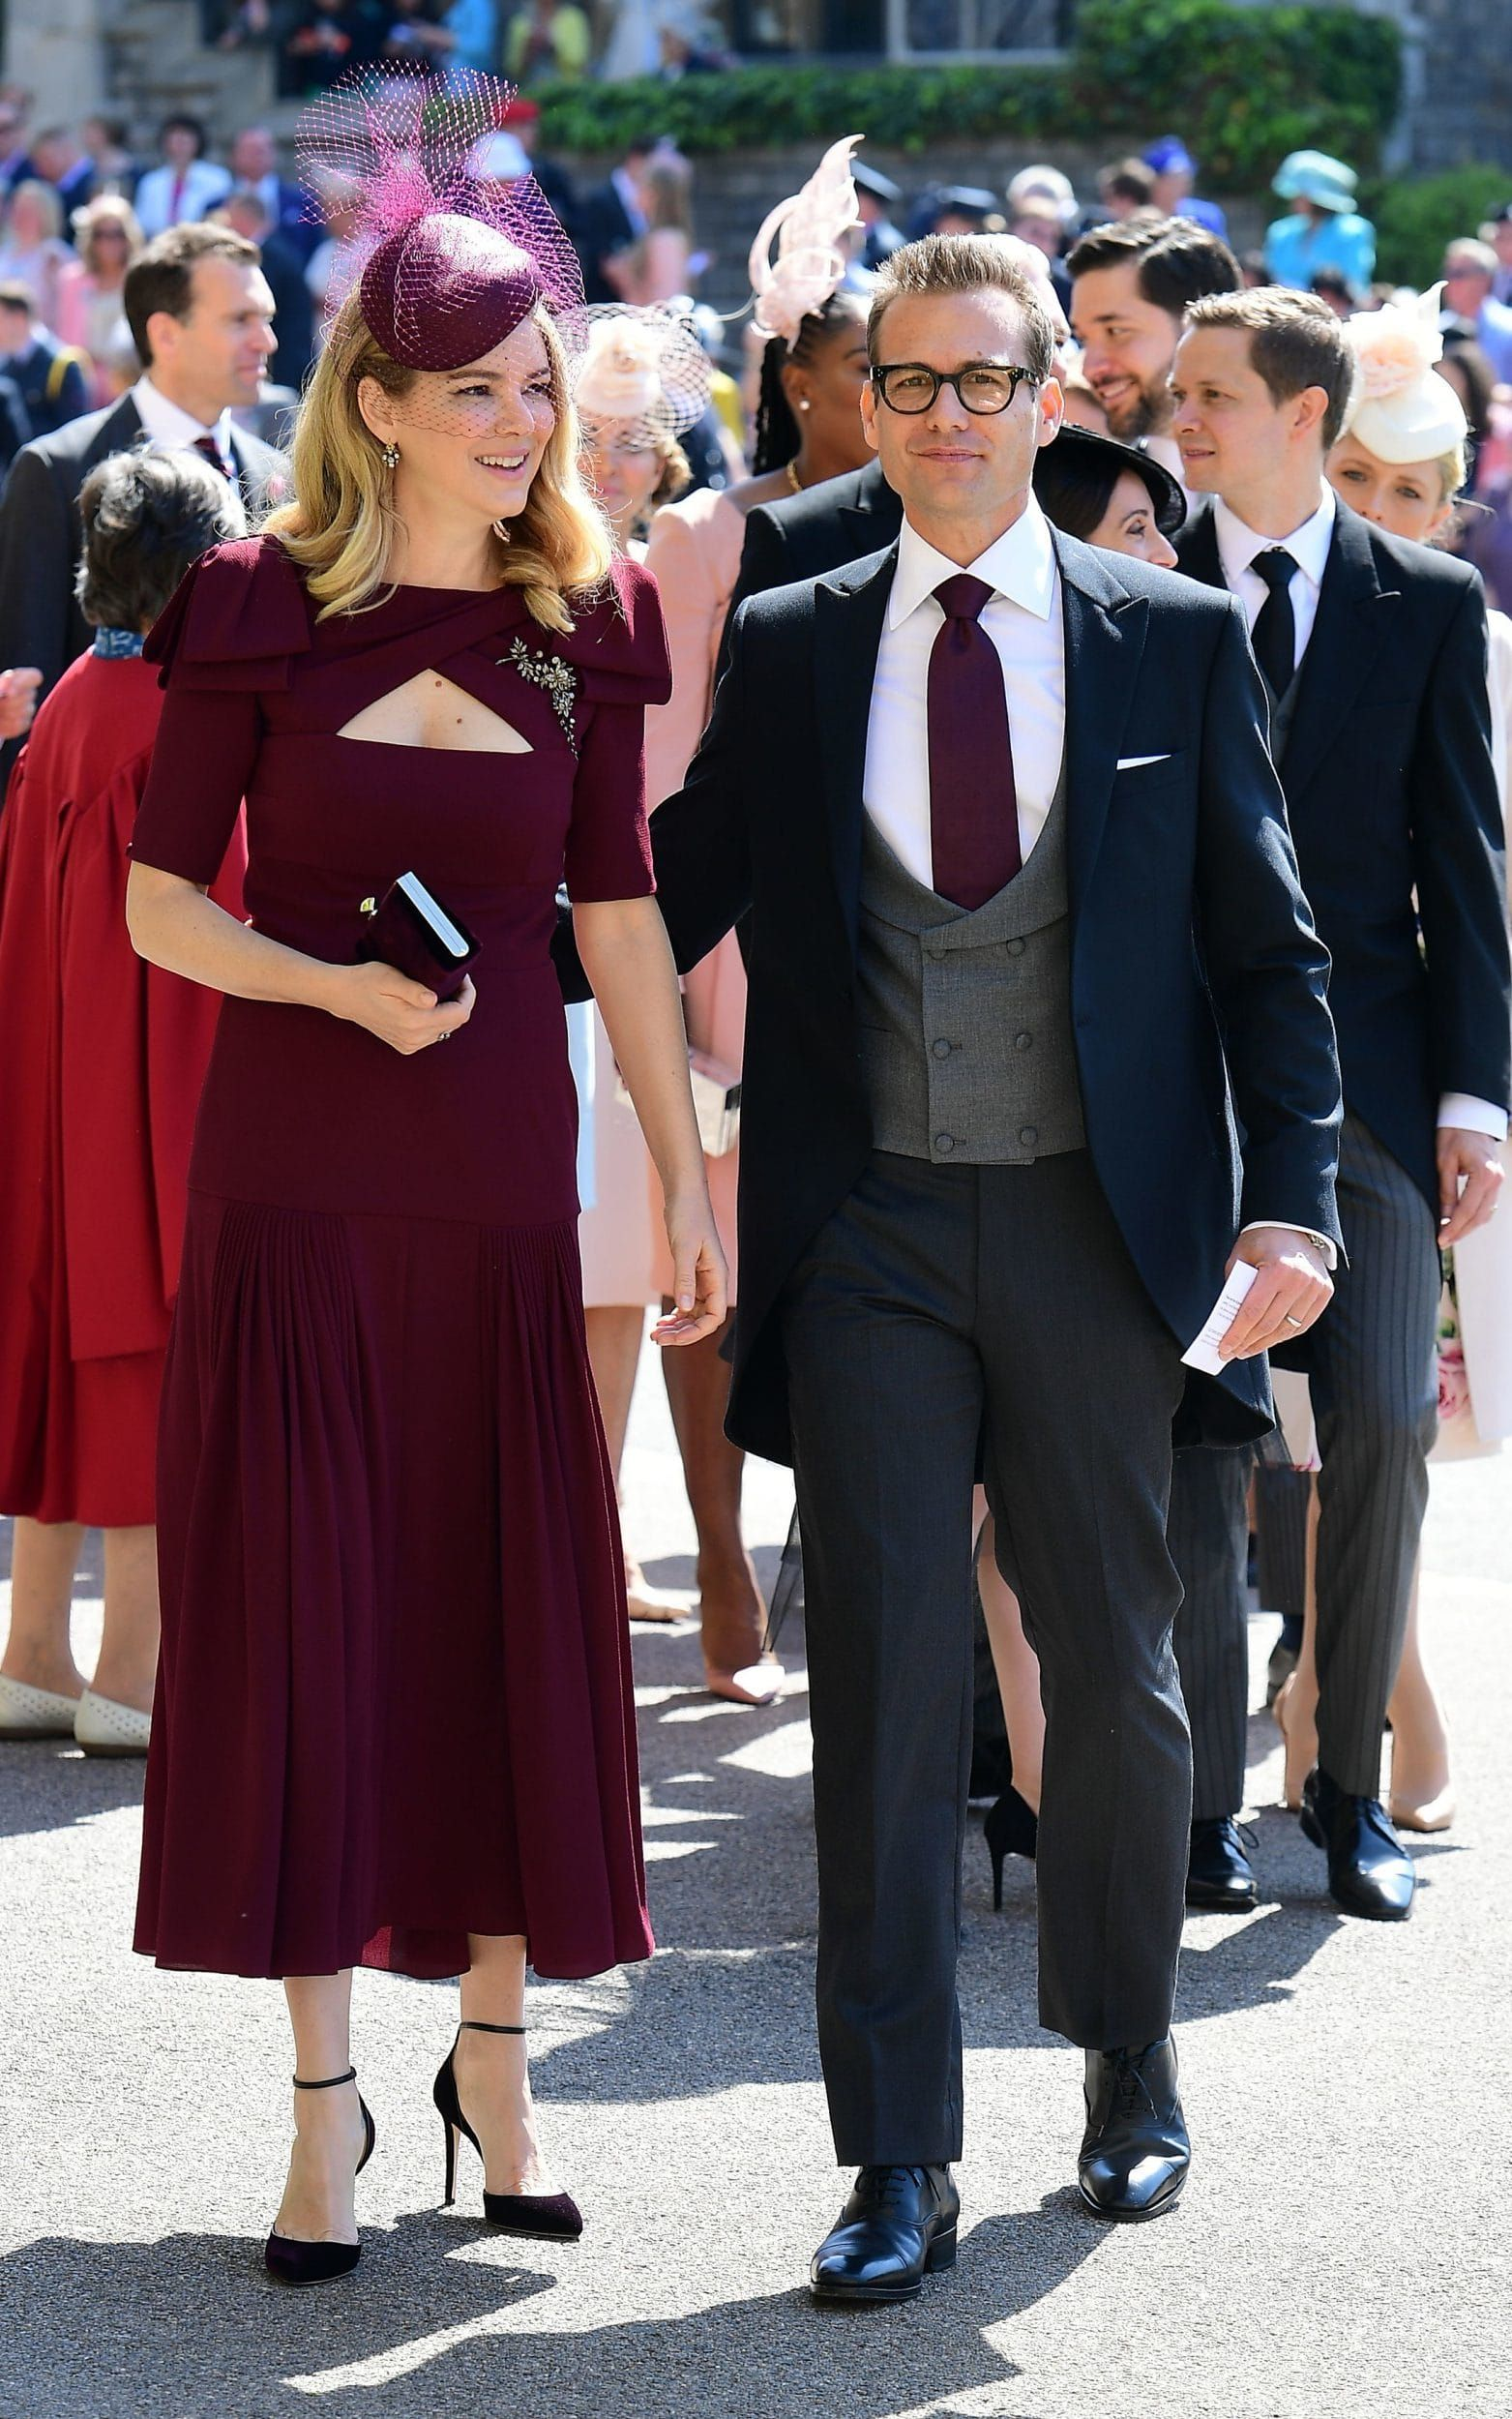 Best Royal Wedding Guest Outfits Serena Williams And Priyanka Chopra Lead The Dazzling Evening Looks Royal Wedding Guests Outfits Royal Wedding Outfits Celebrity Dresses [ 2500 x 1563 Pixel ]